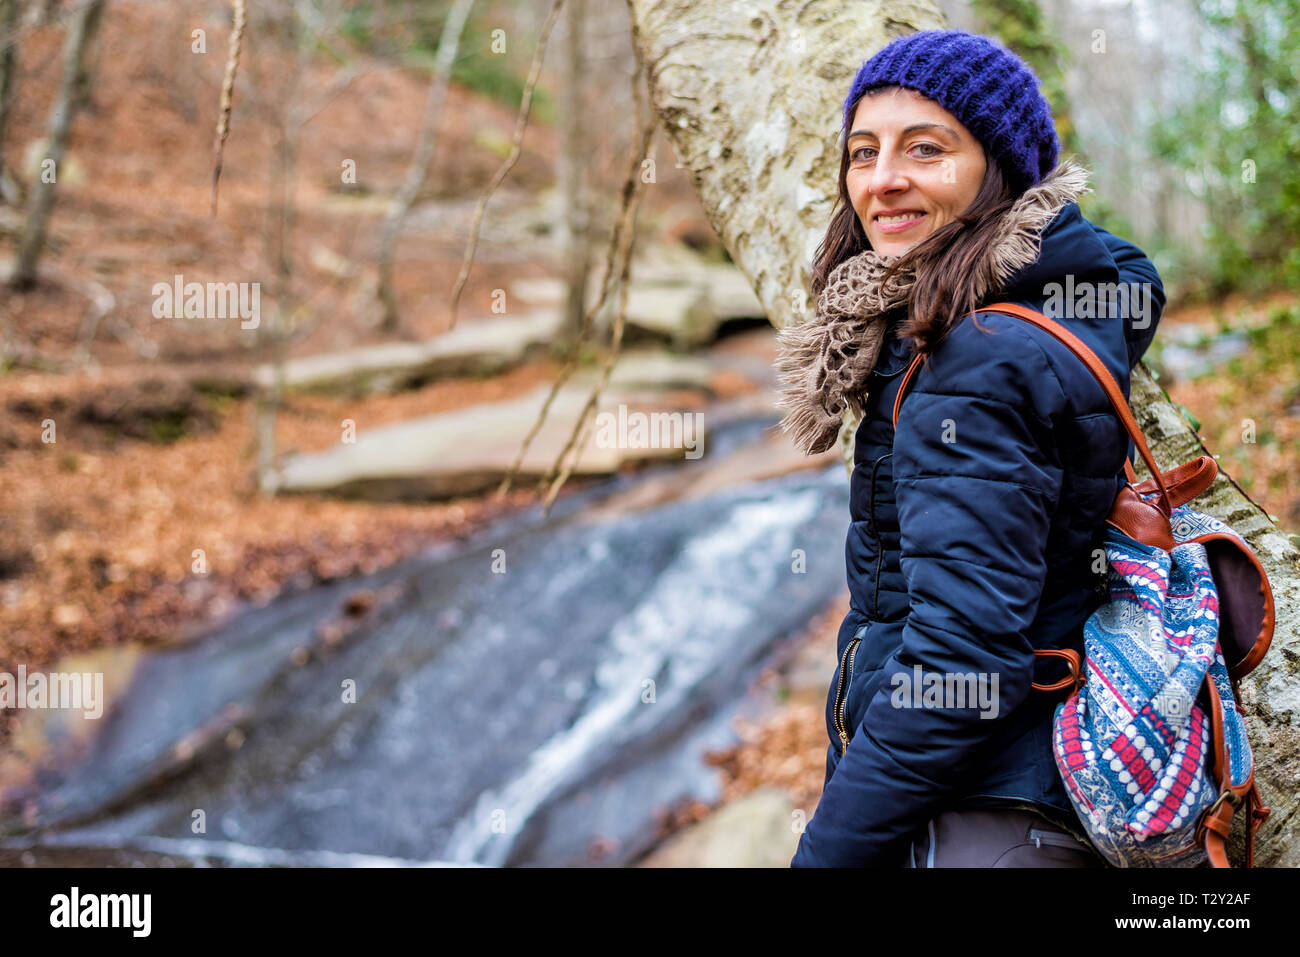 Woman looking to camera against falls in river wearing a wool hat and backpack - Stock Image